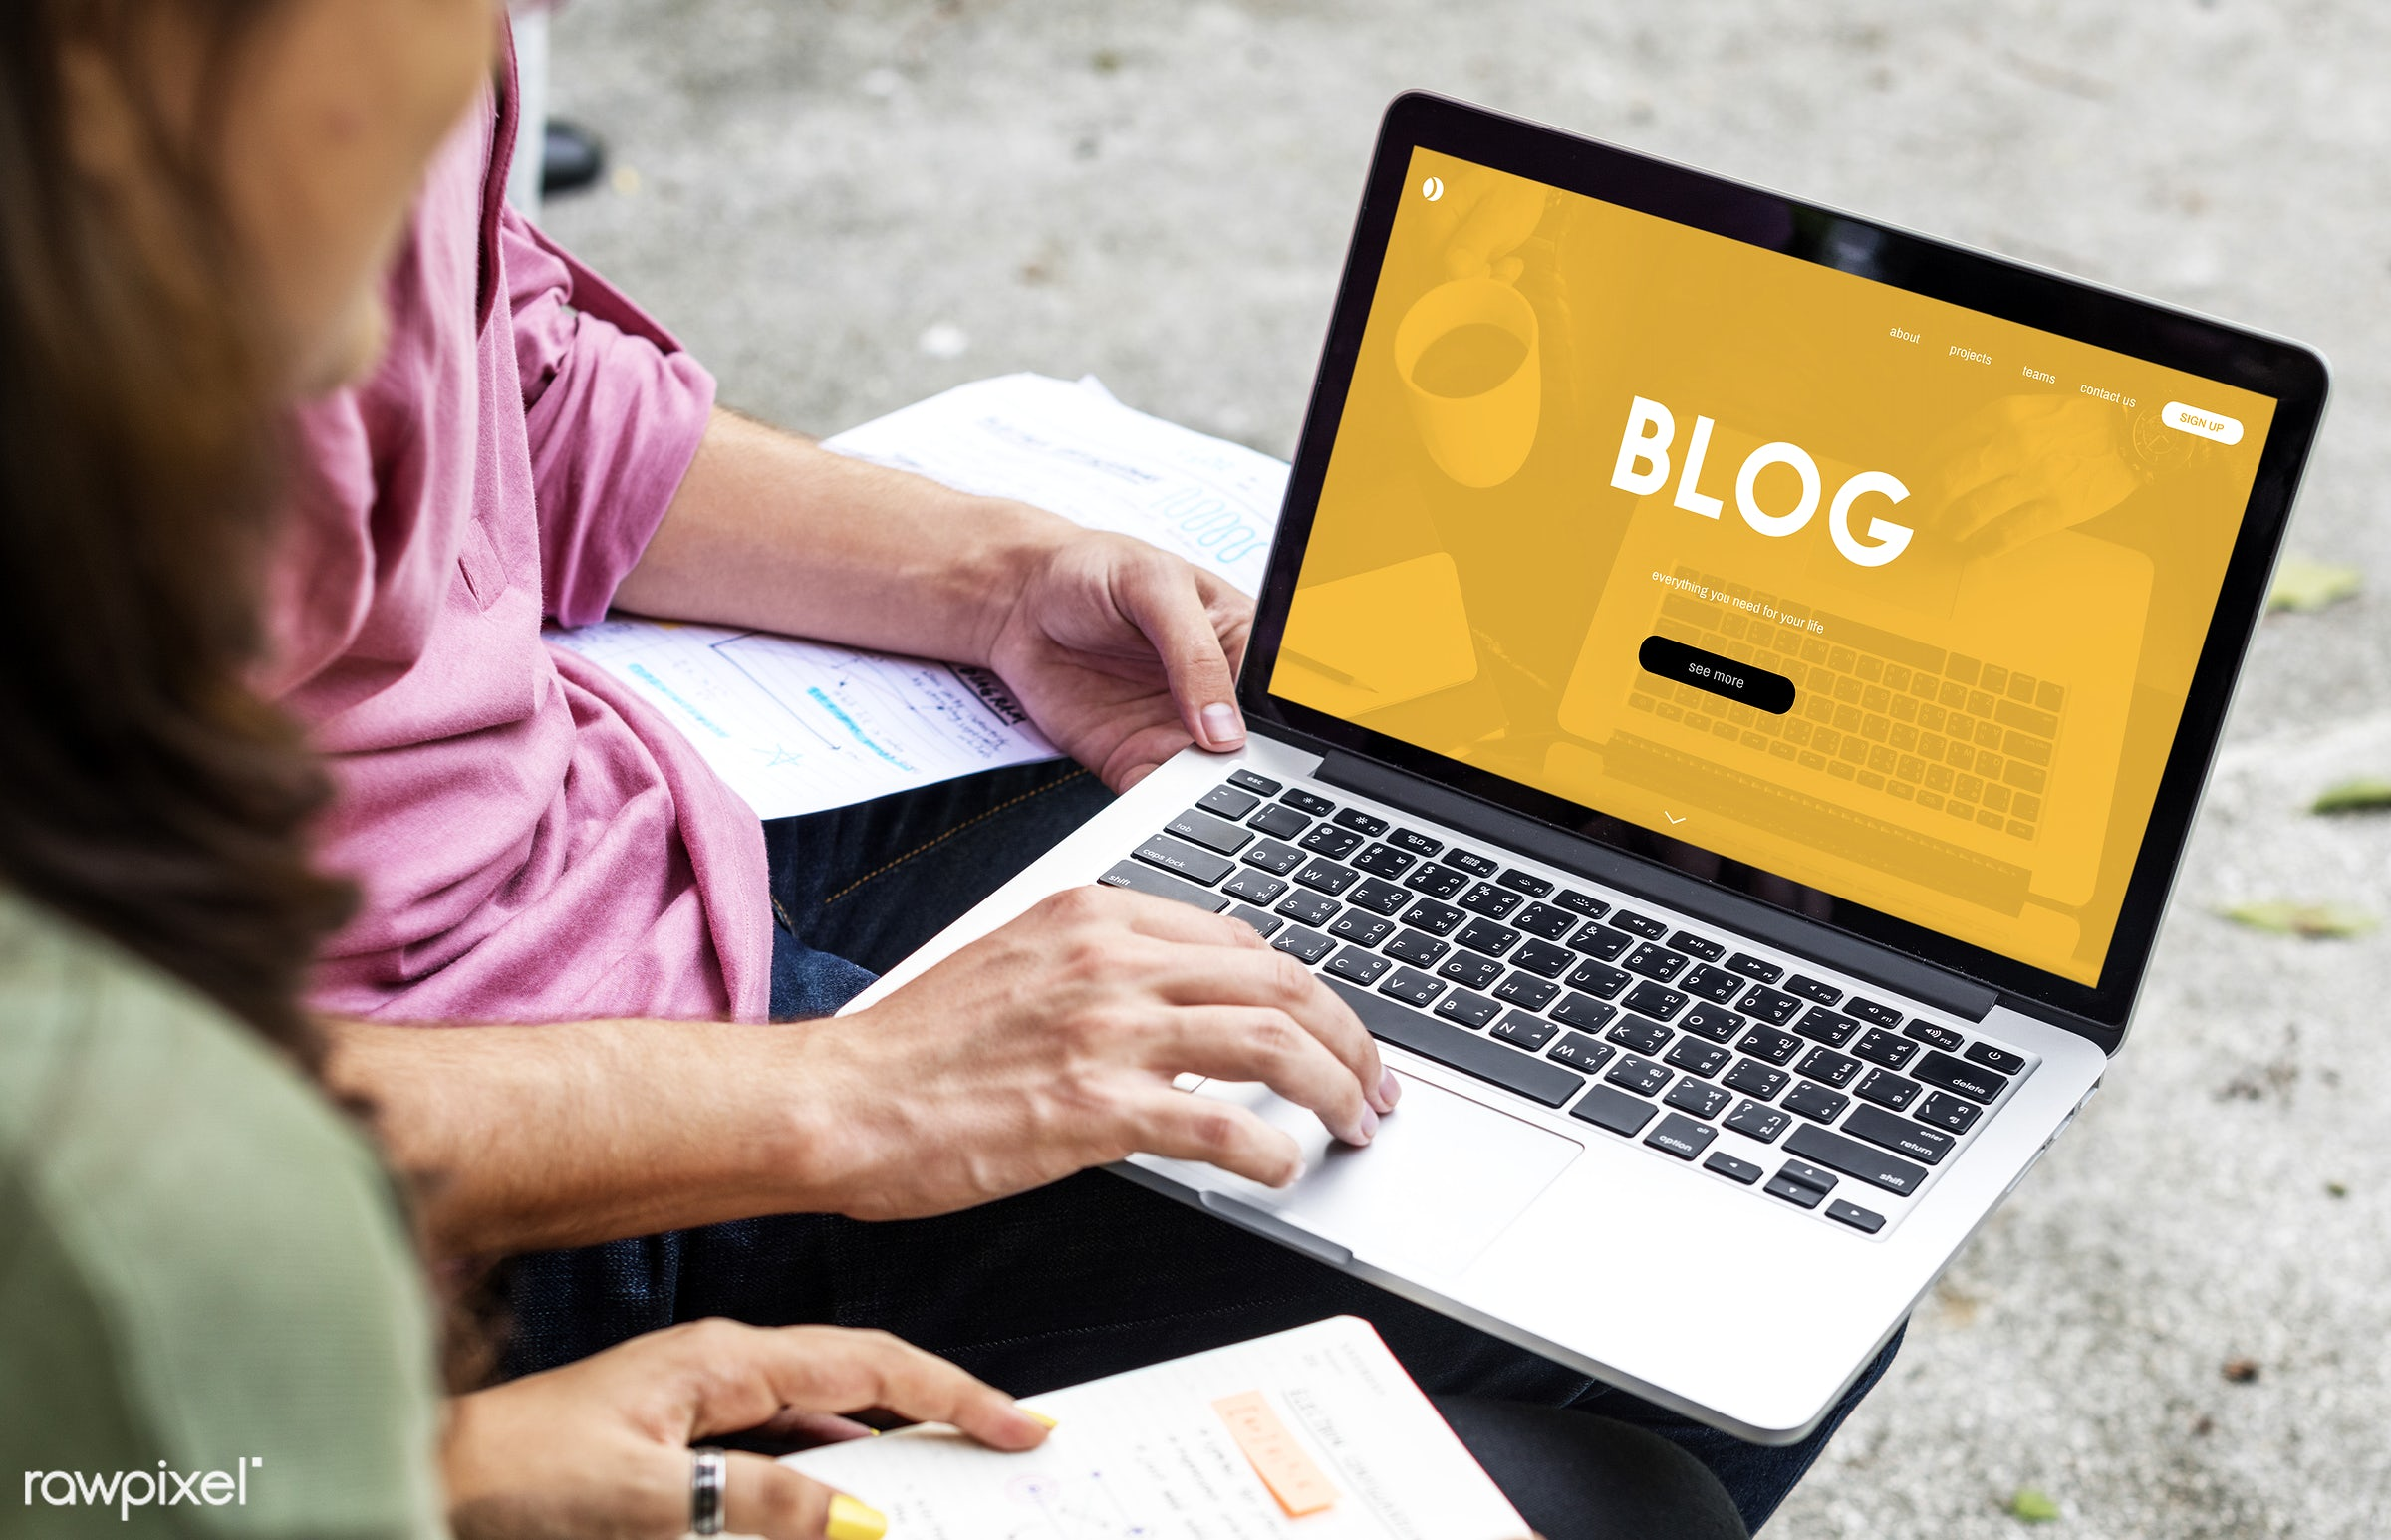 Online blog - blog, asian, browsing, caucasian, chat, communication, community, connection, content, devices, digital,...